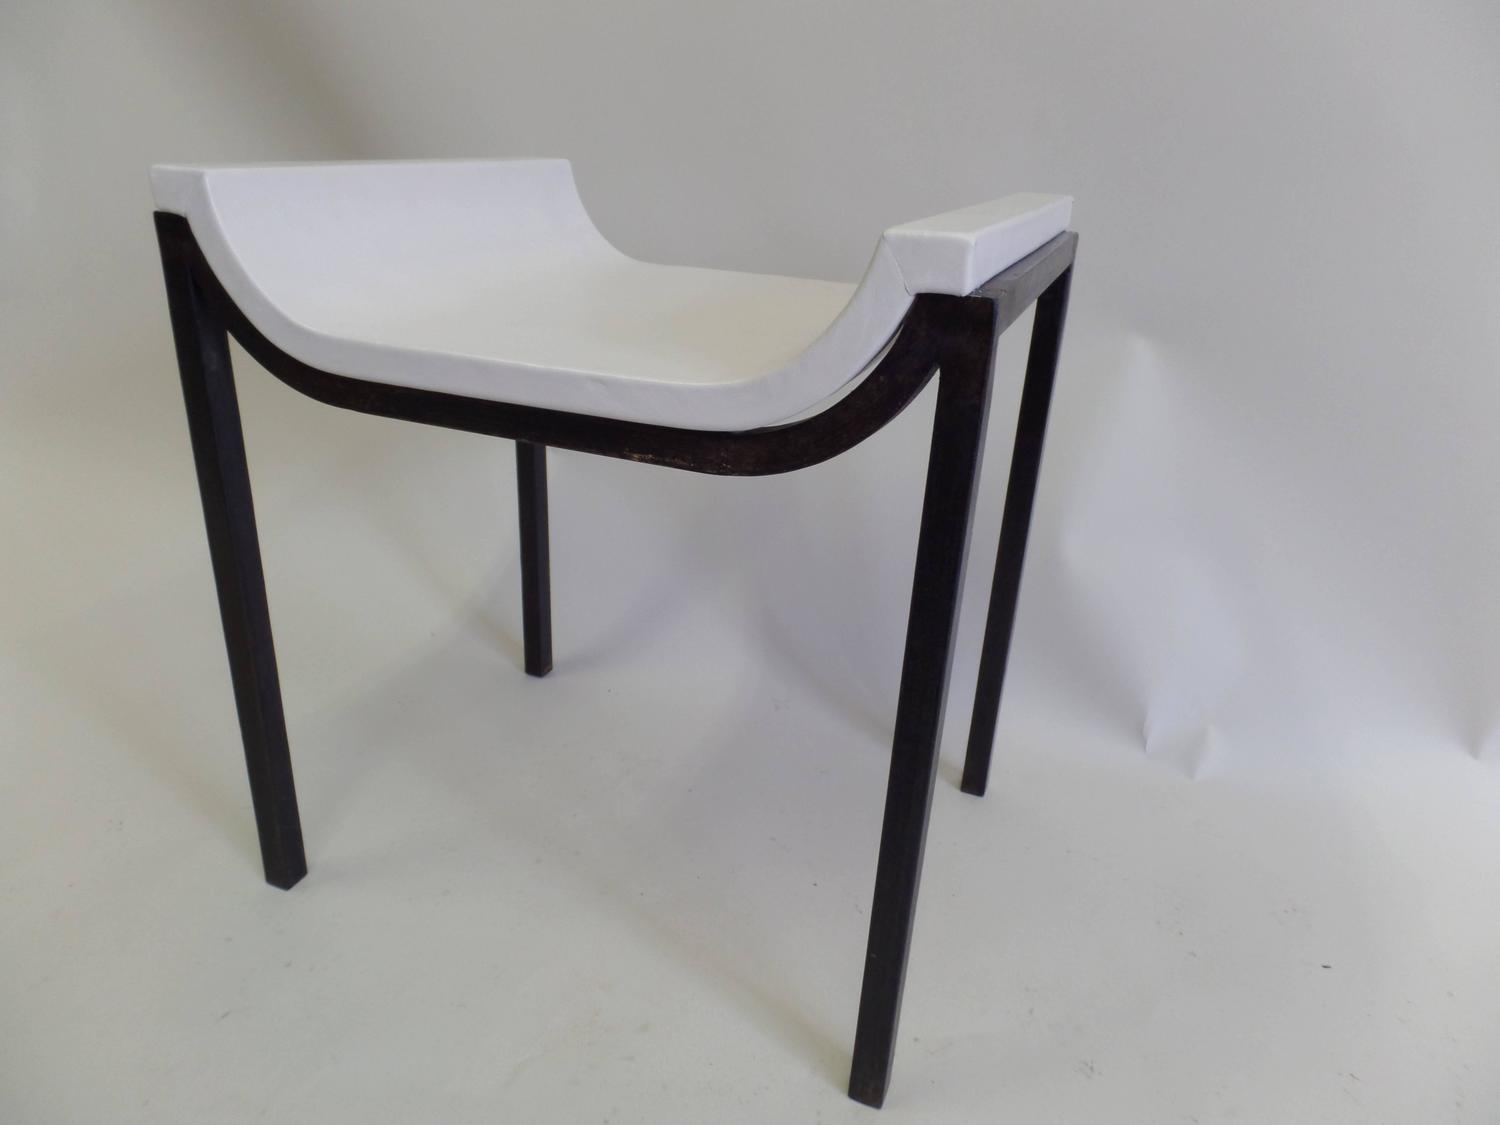 French Iron And Leather Bench Or Vanity Stool Attributed